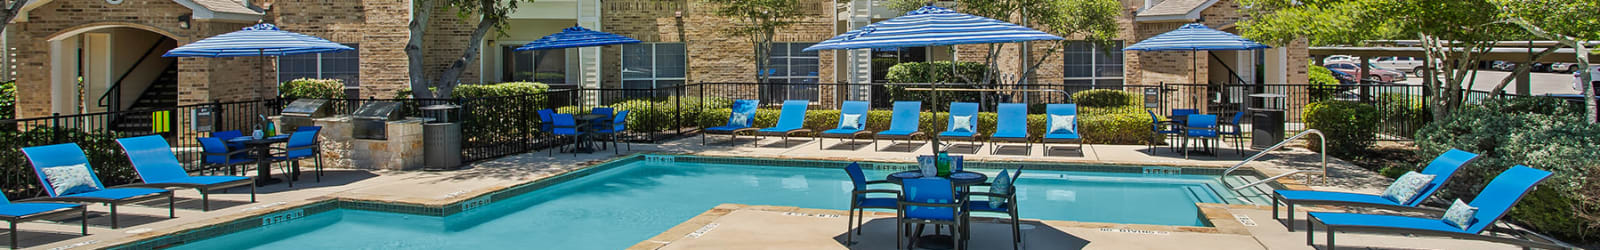 Apply now at Stoneybrook Apartments & Townhomes in San Antonio, Texas